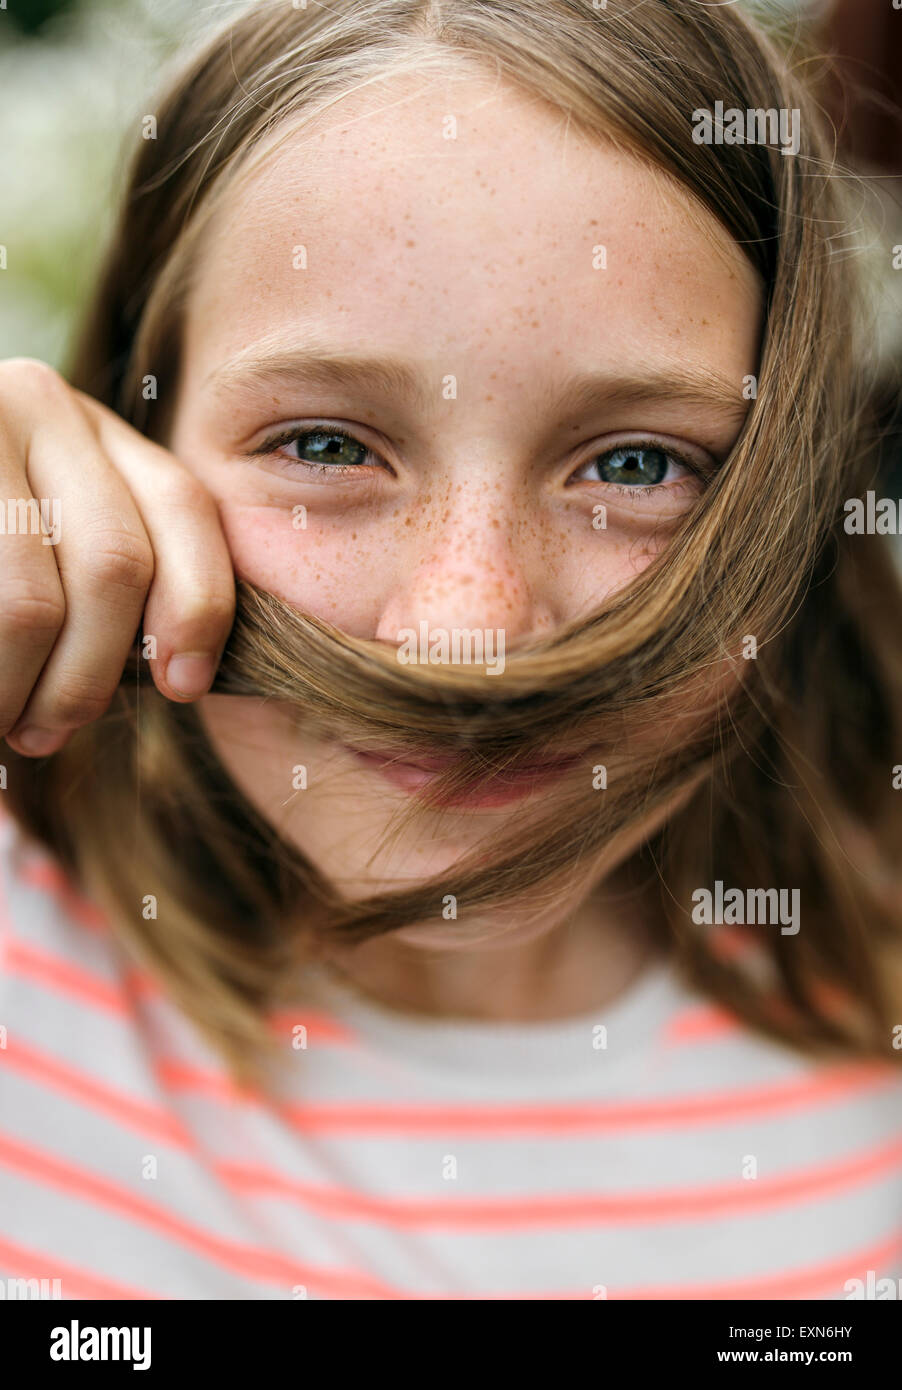 Portrait of smiling girl holding strand of hair under her nose - Stock Image